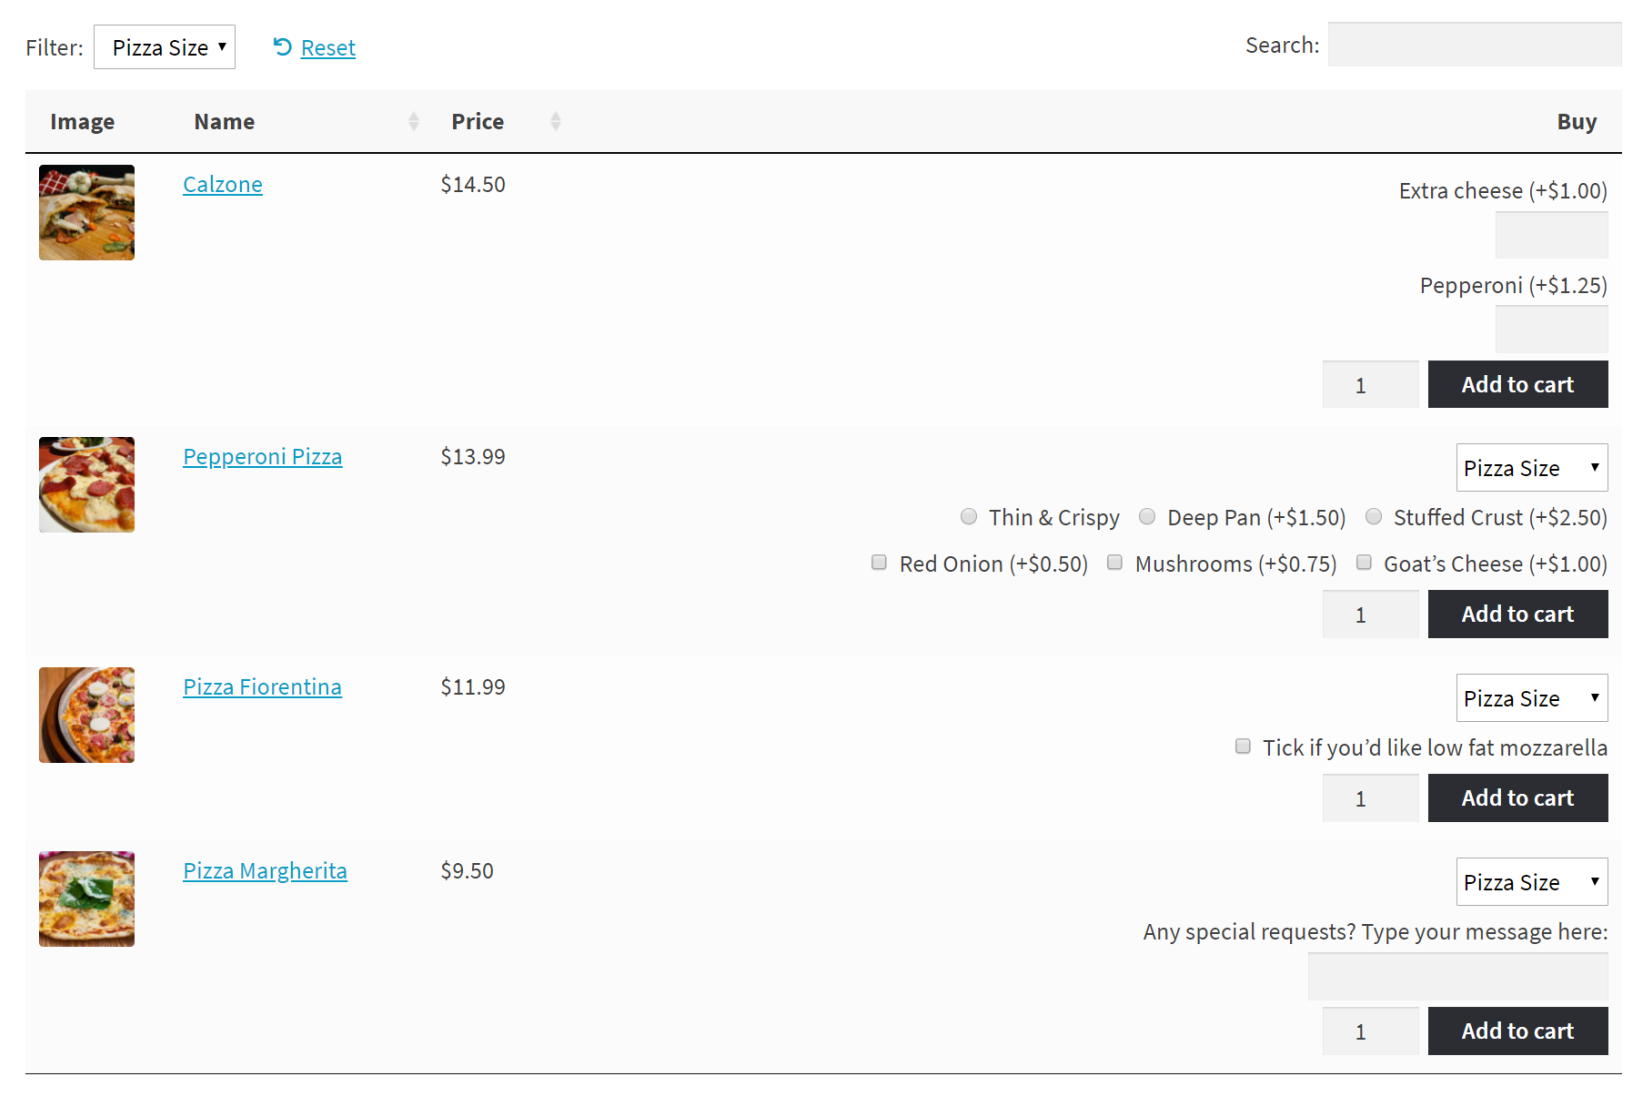 WooCommerce Product Add-Ons with product variations in a table layout